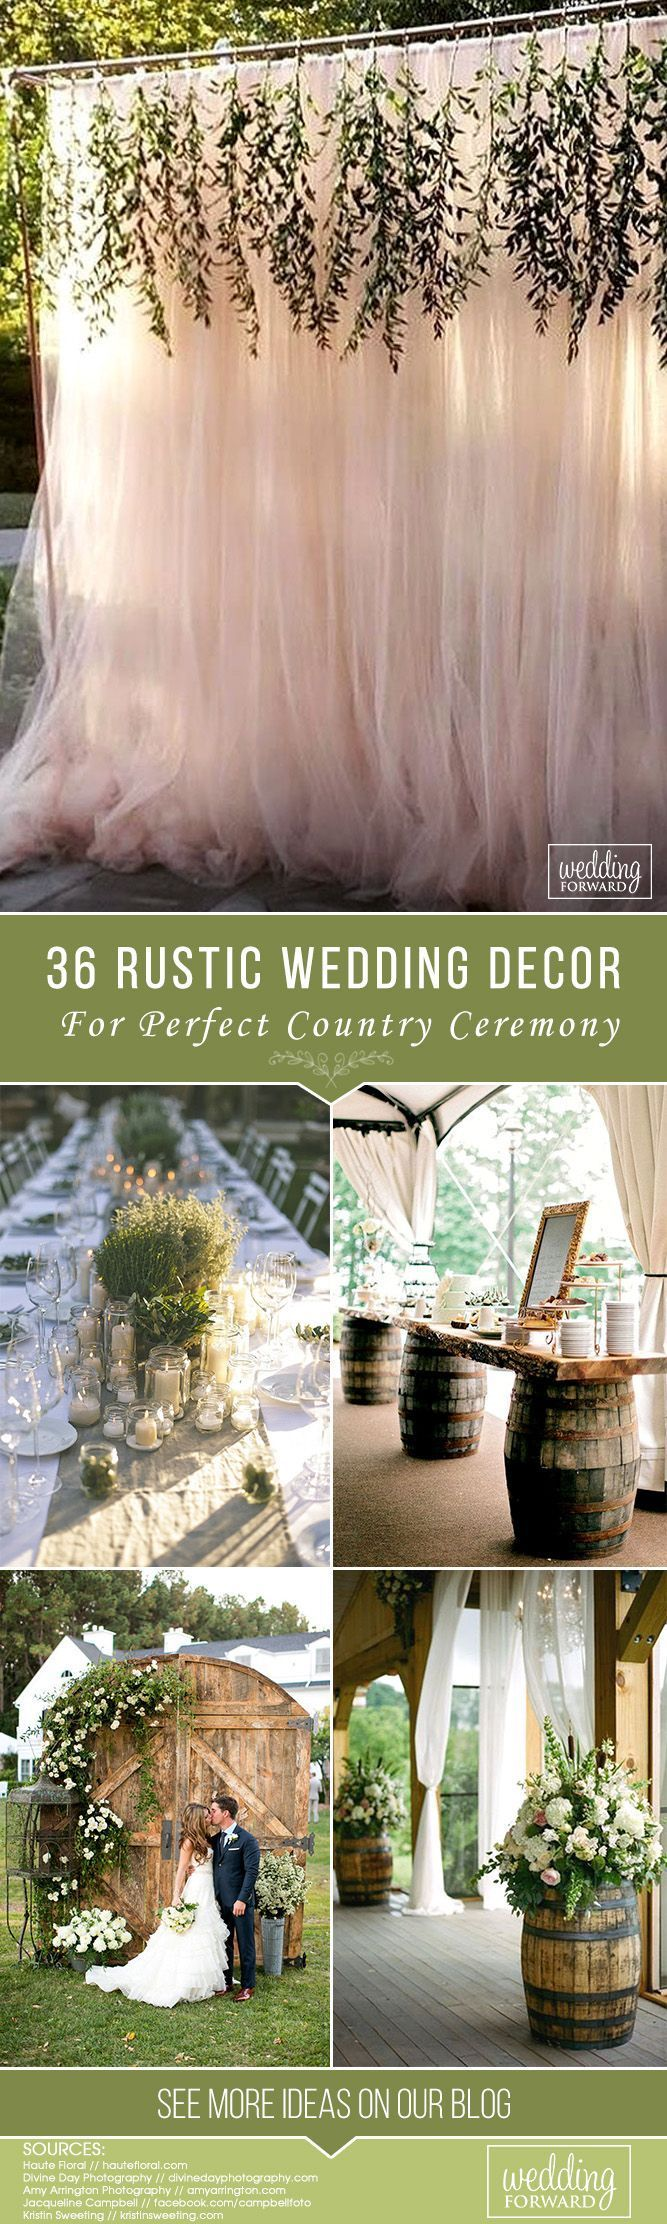 36 Rustic Wedding Decor For Country Ceremony ❤ Planning a country wedding? We are here to help you with some nice rustic wedding decor ideas! Let's see how to use wood, rustic materials, bouquets, boots.